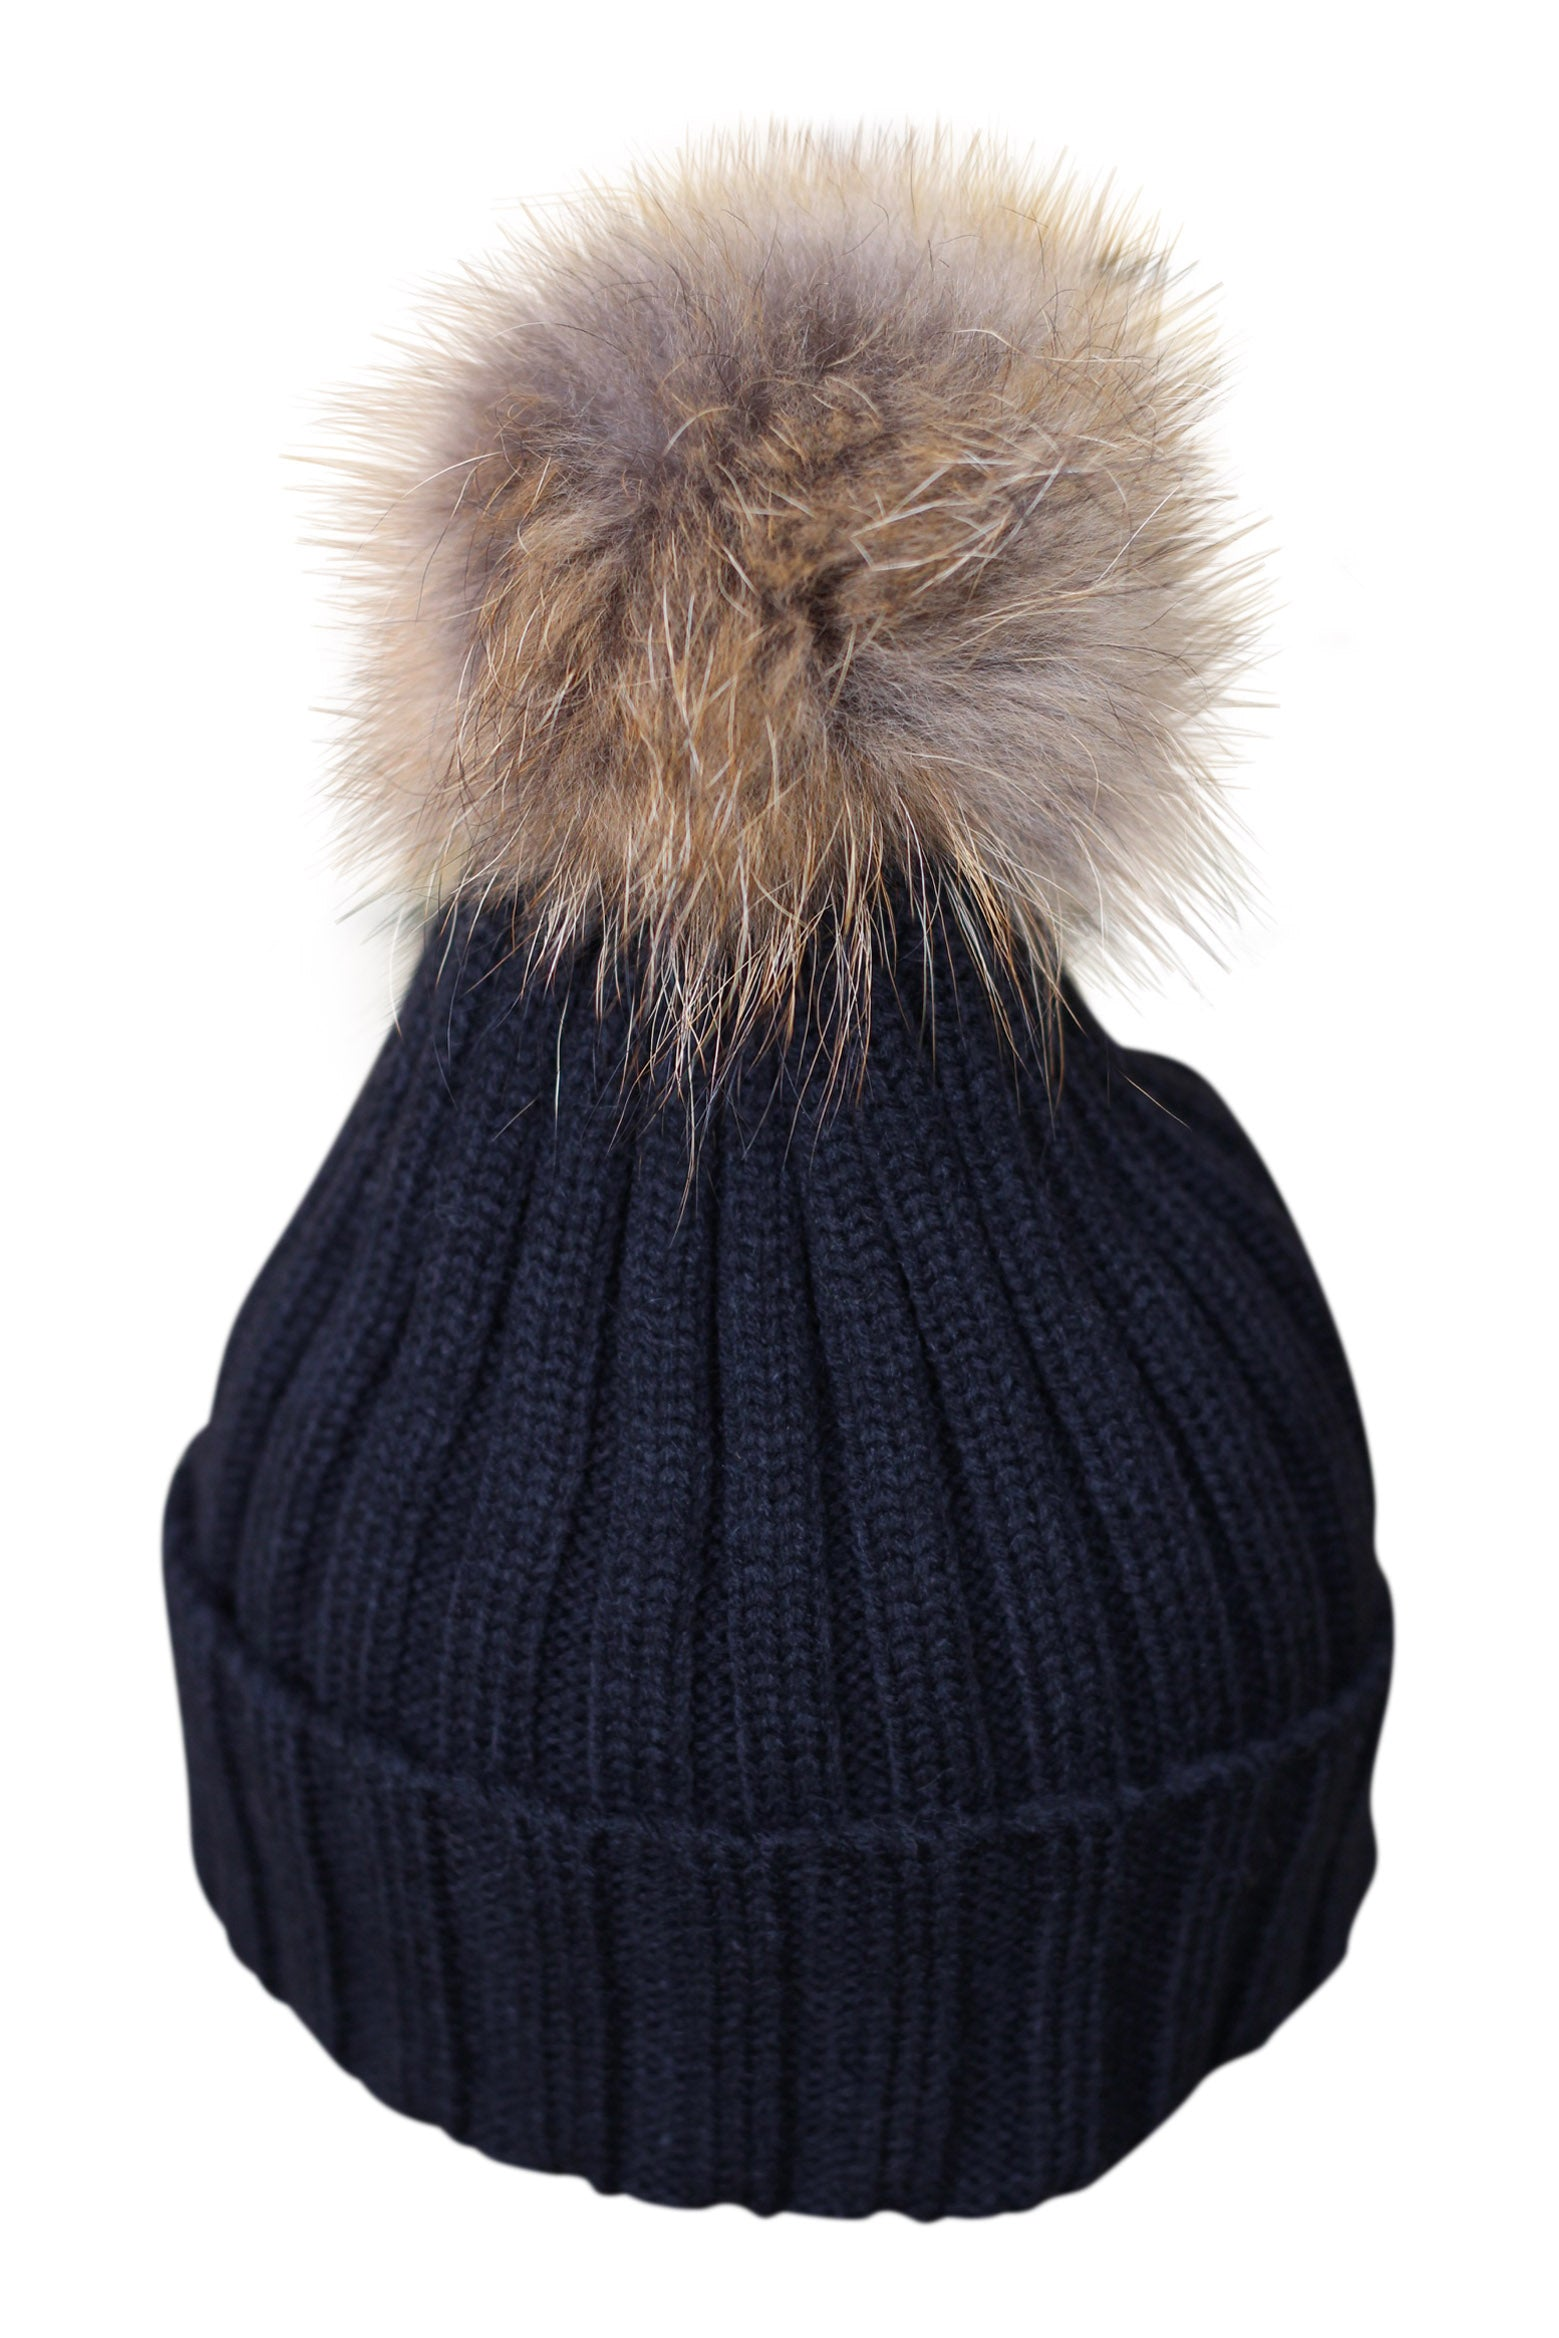 Black Fur Bobble Hat  03330f04d84